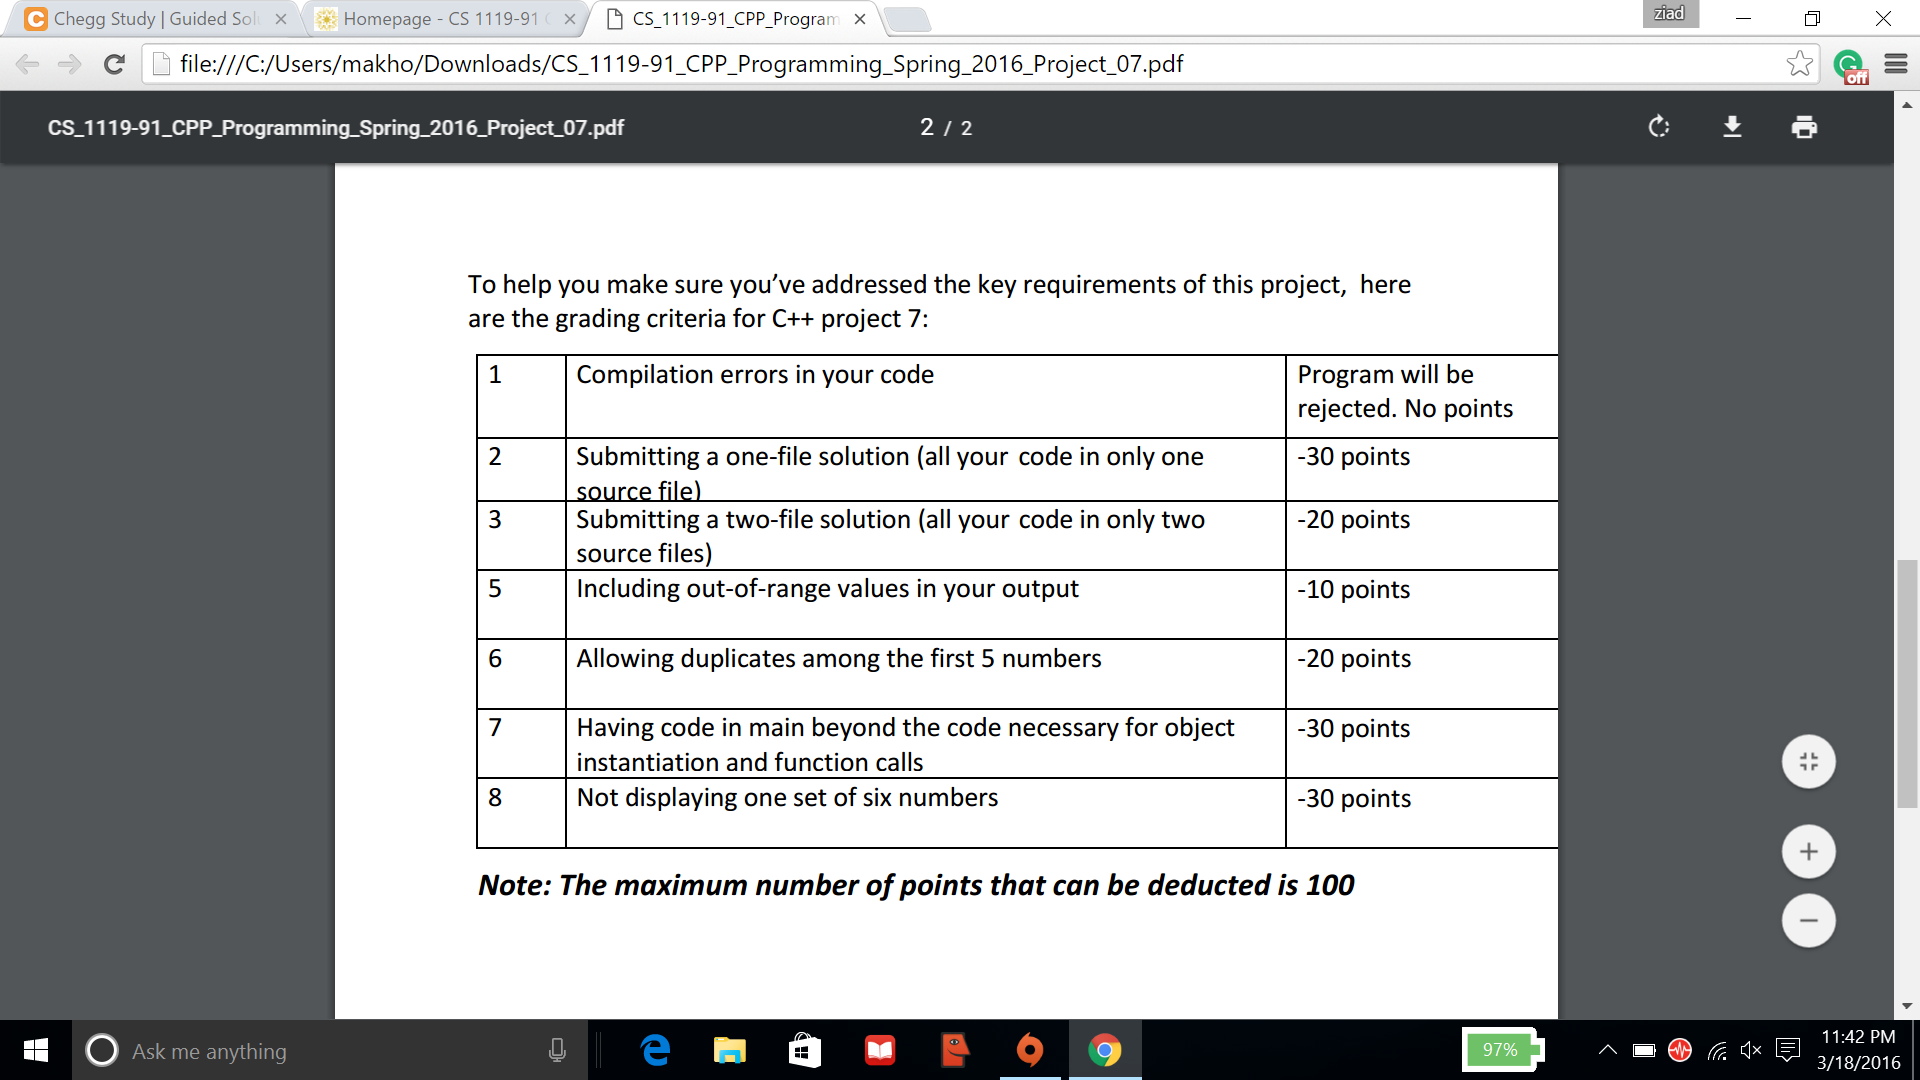 Please need help I need to write 3 paragraphs.. Plaese help?